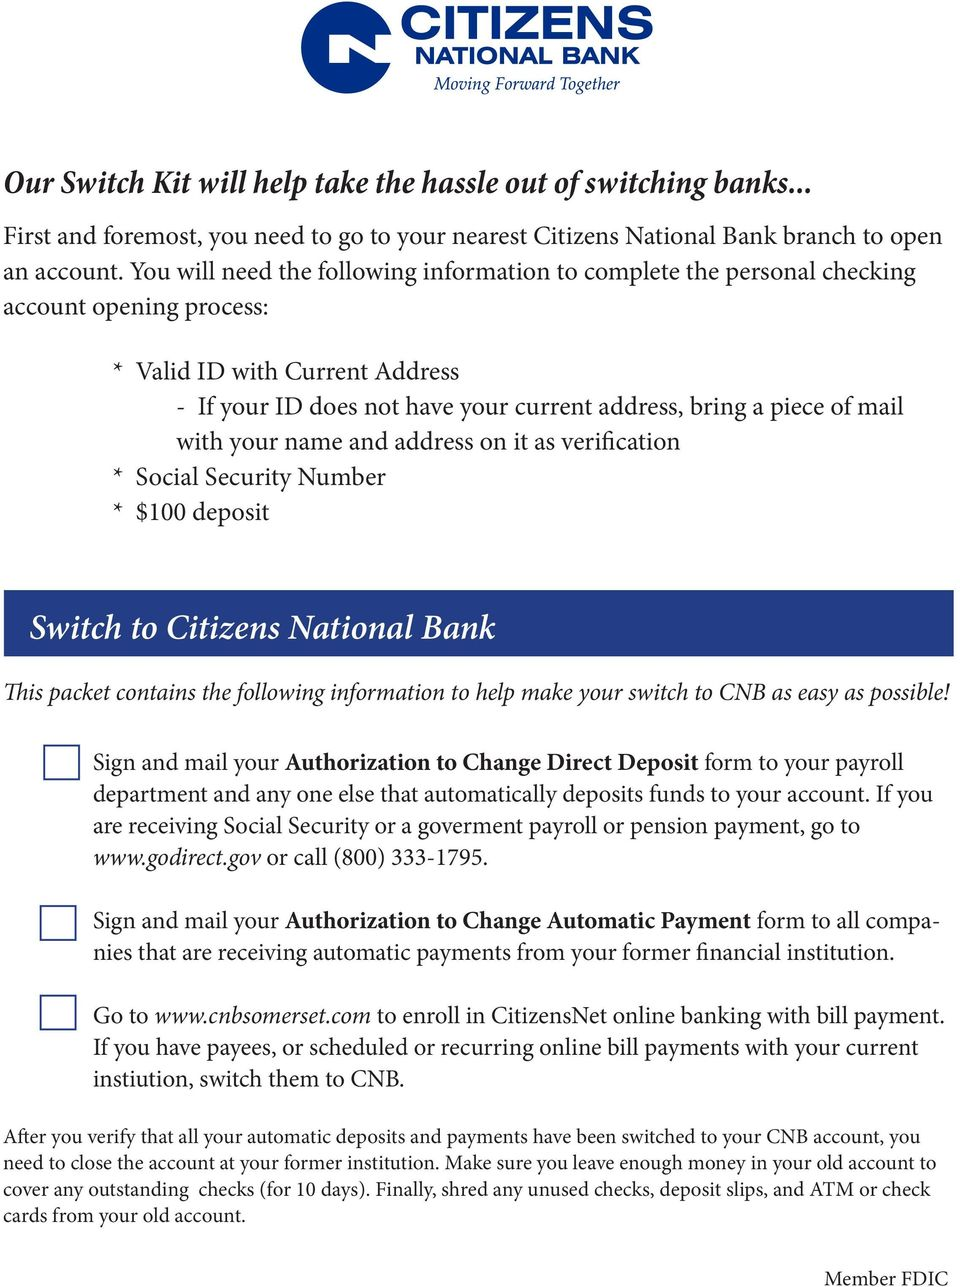 Switch to Citizens National Bank - PDF